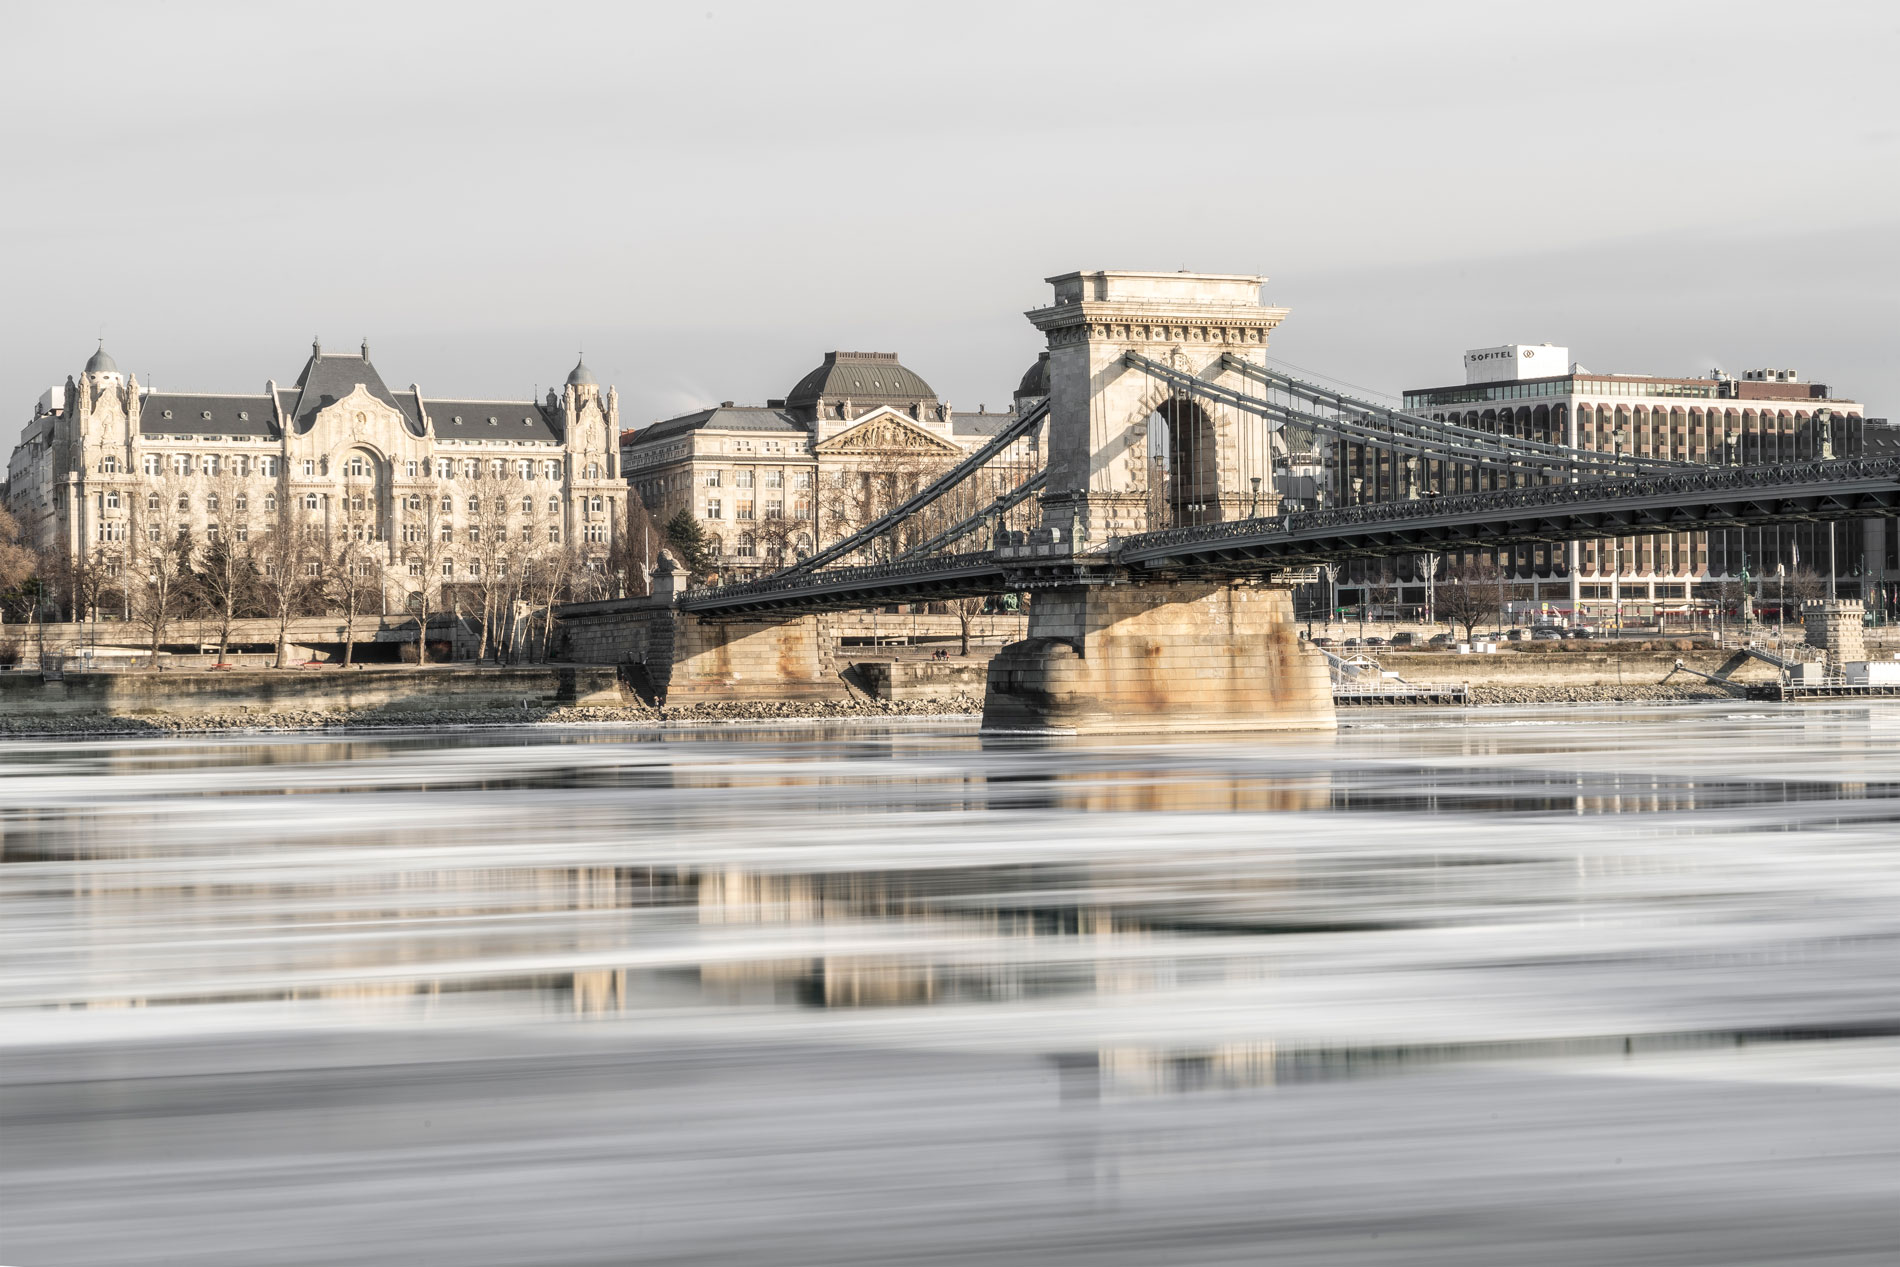 budapest_atthary_photography_danube_35